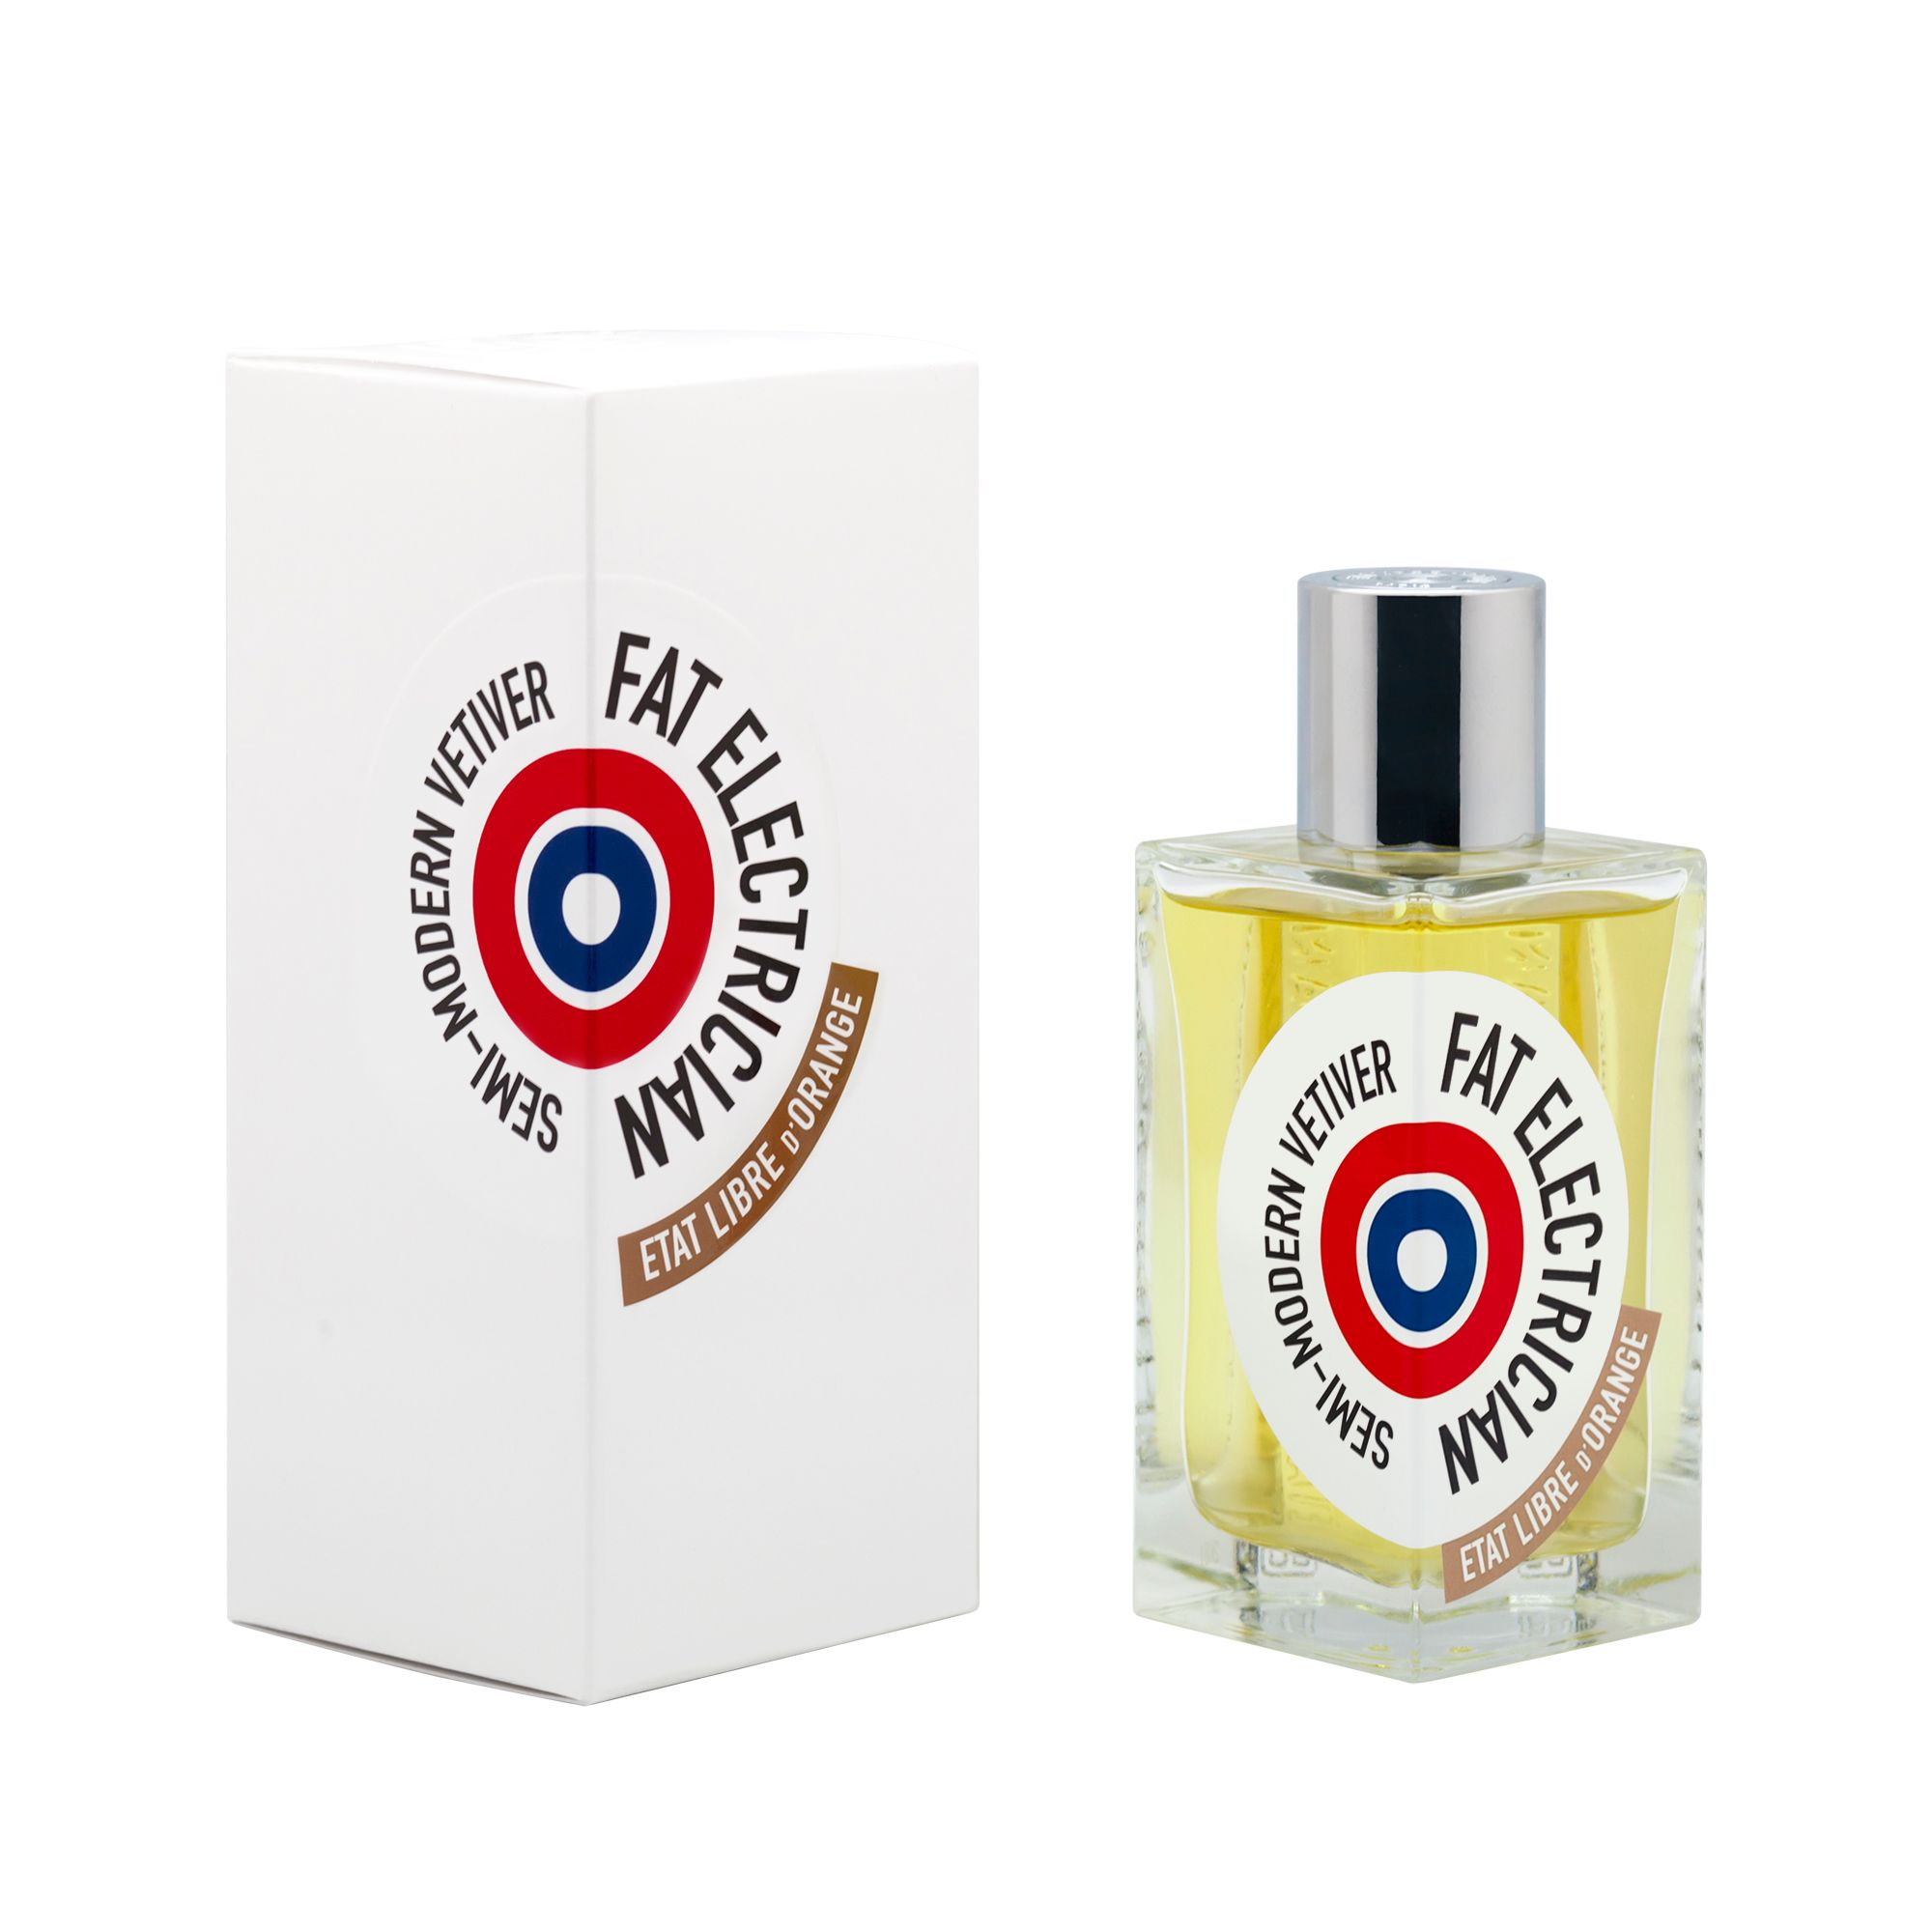 Etat Libre d'Orange Etat Libre d'Orange Fat Electrician Eau de Parfum 100ml